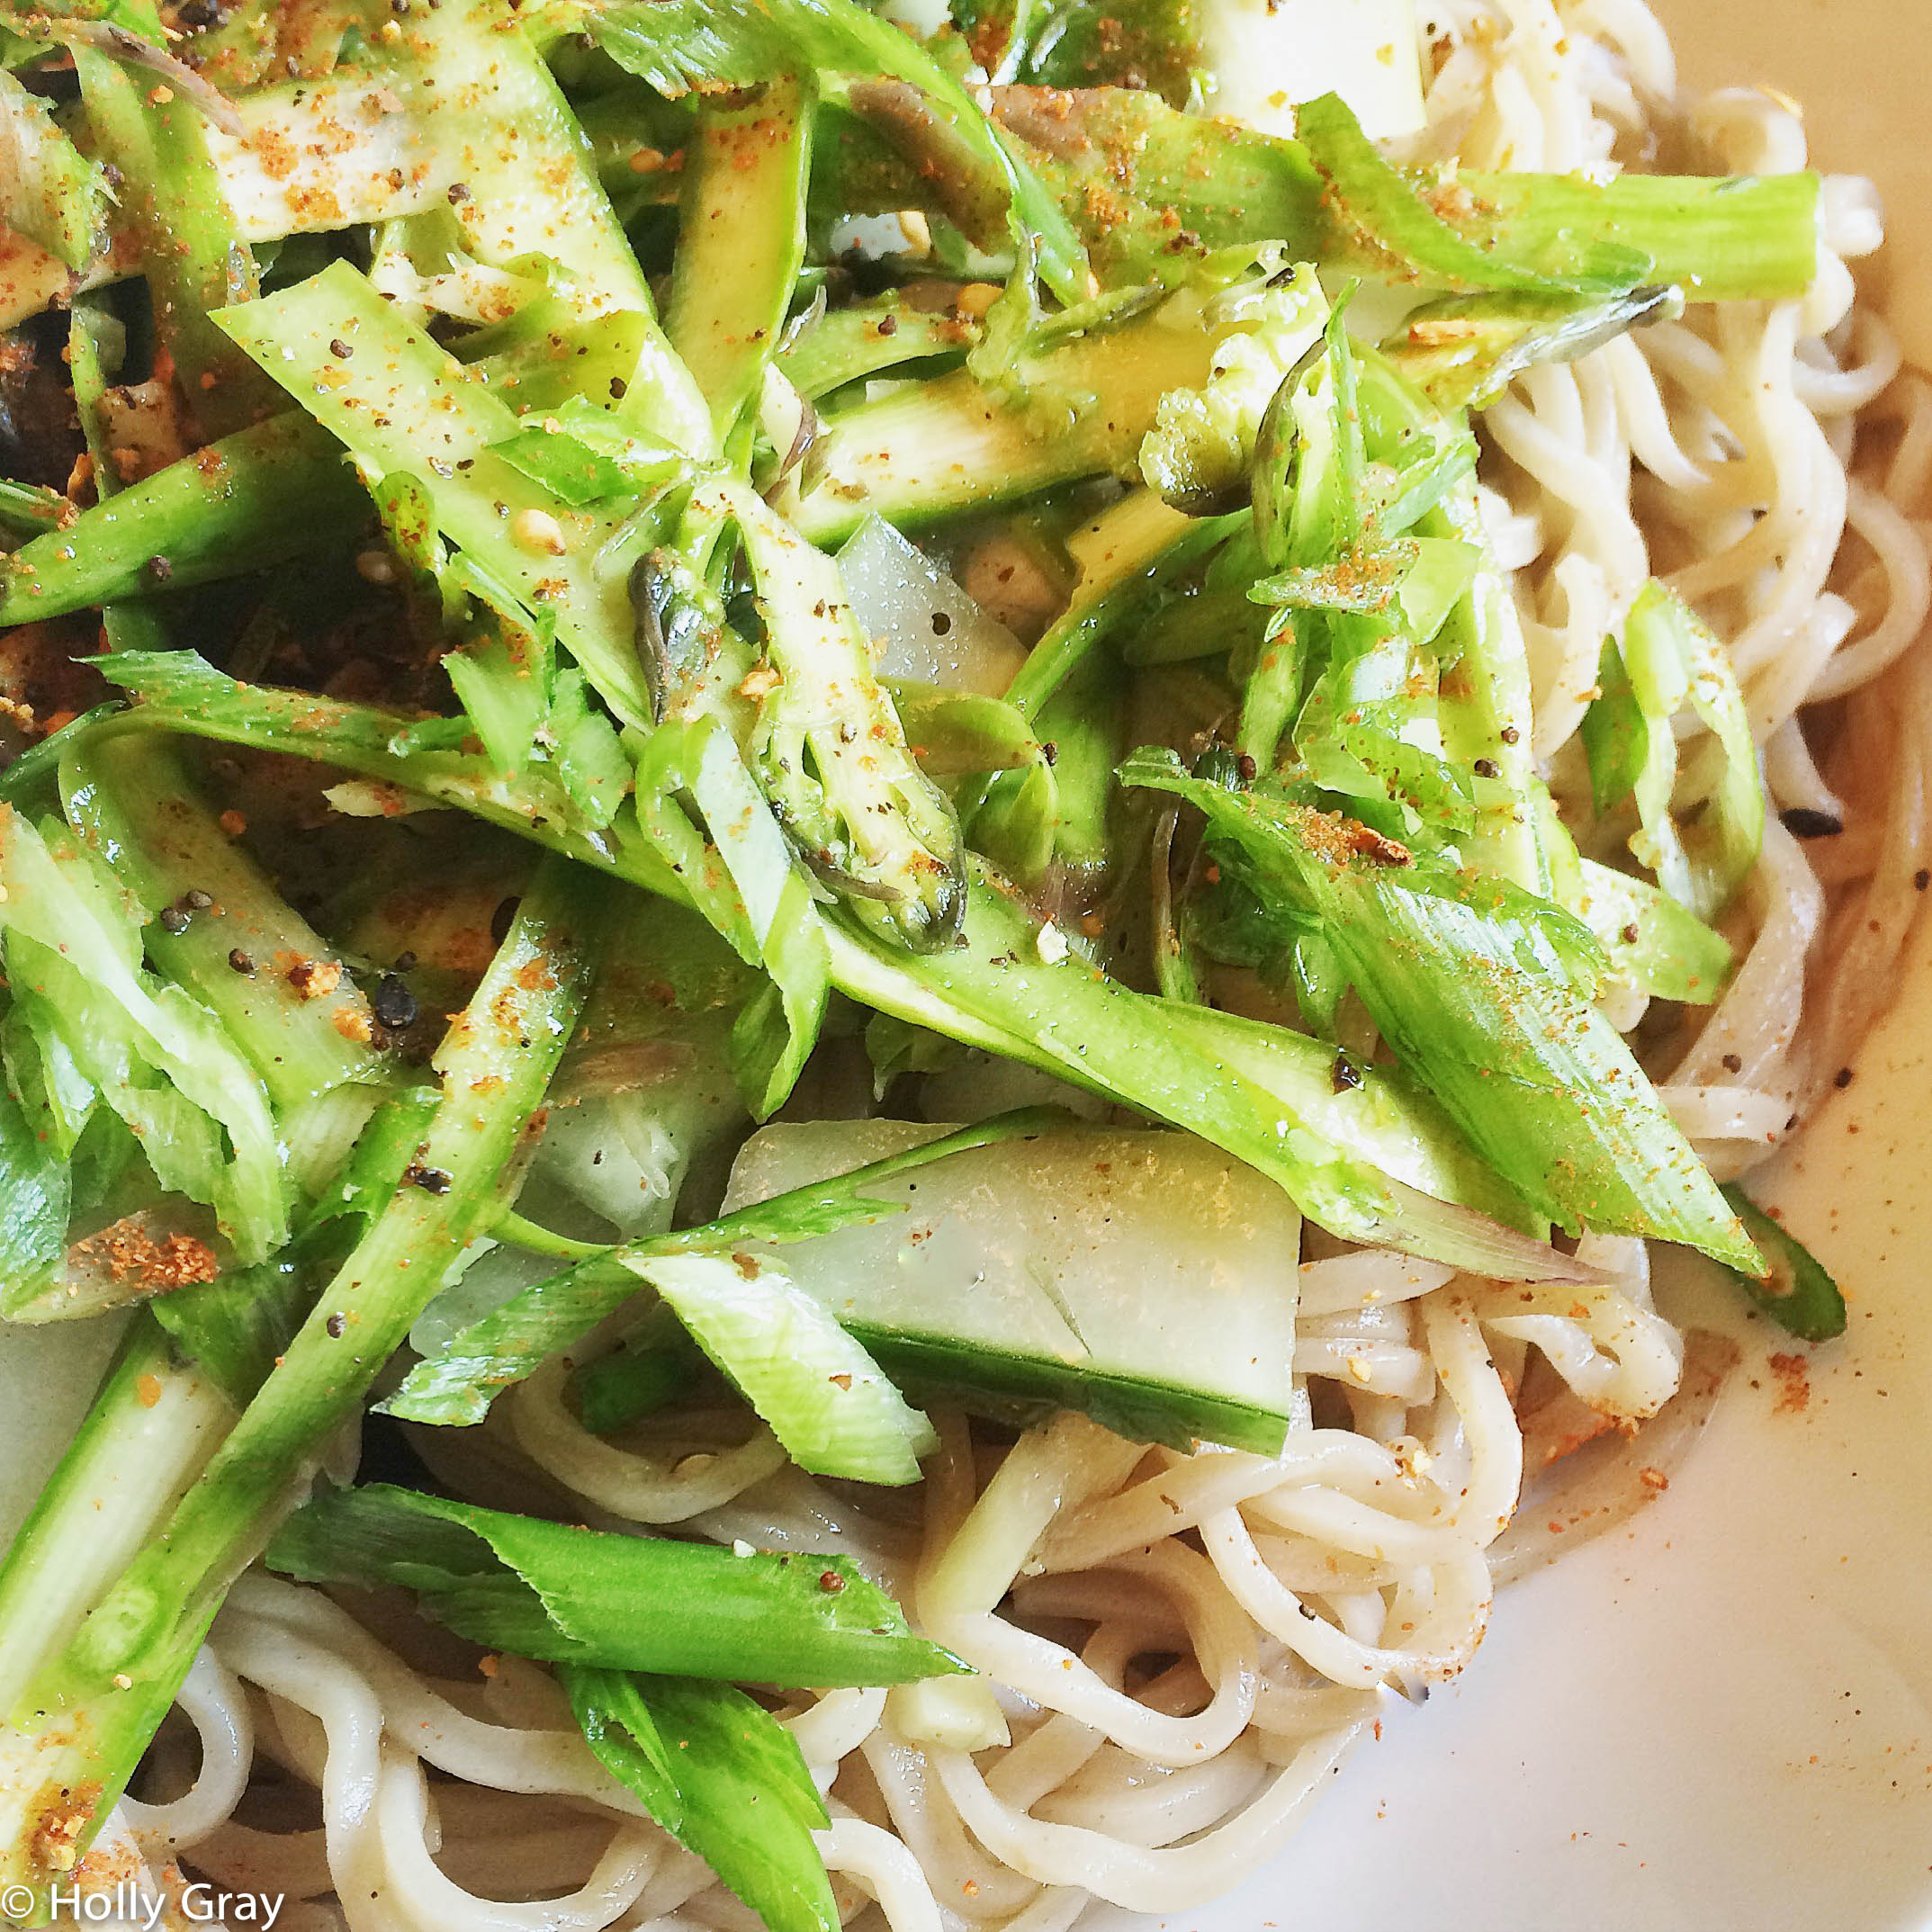 Cold Soba Noodle Salad with Asparagus and Cucumber